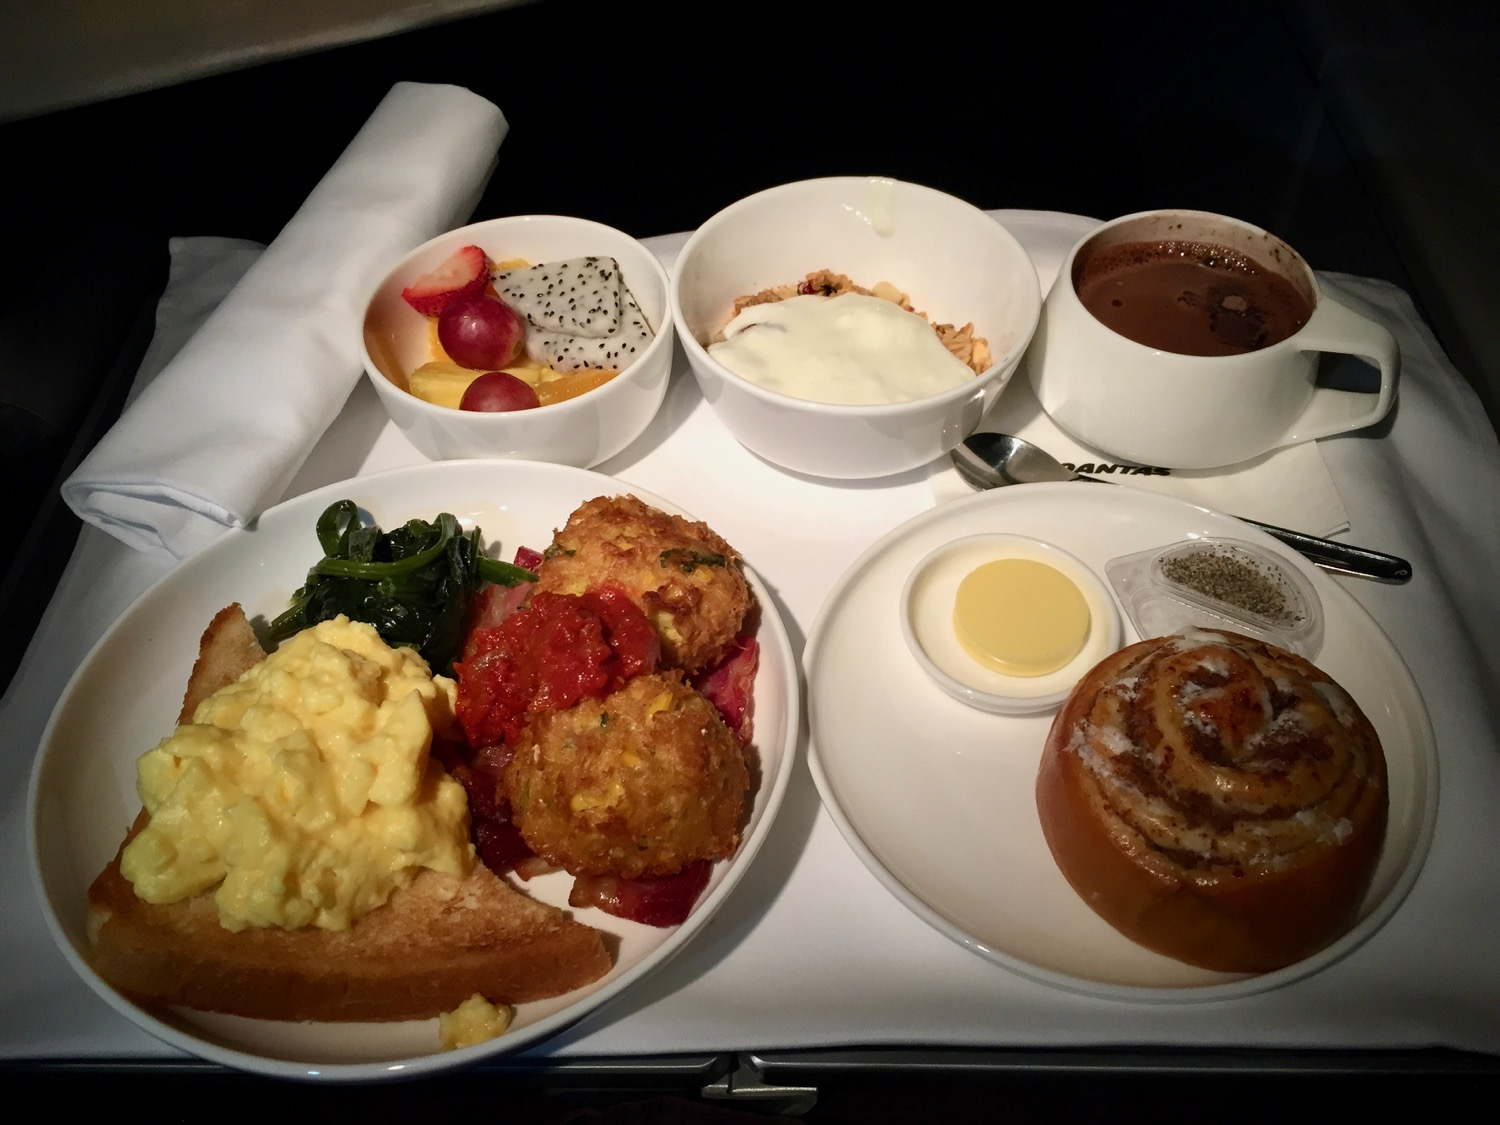 Qantas Business Class 747 Review - 32